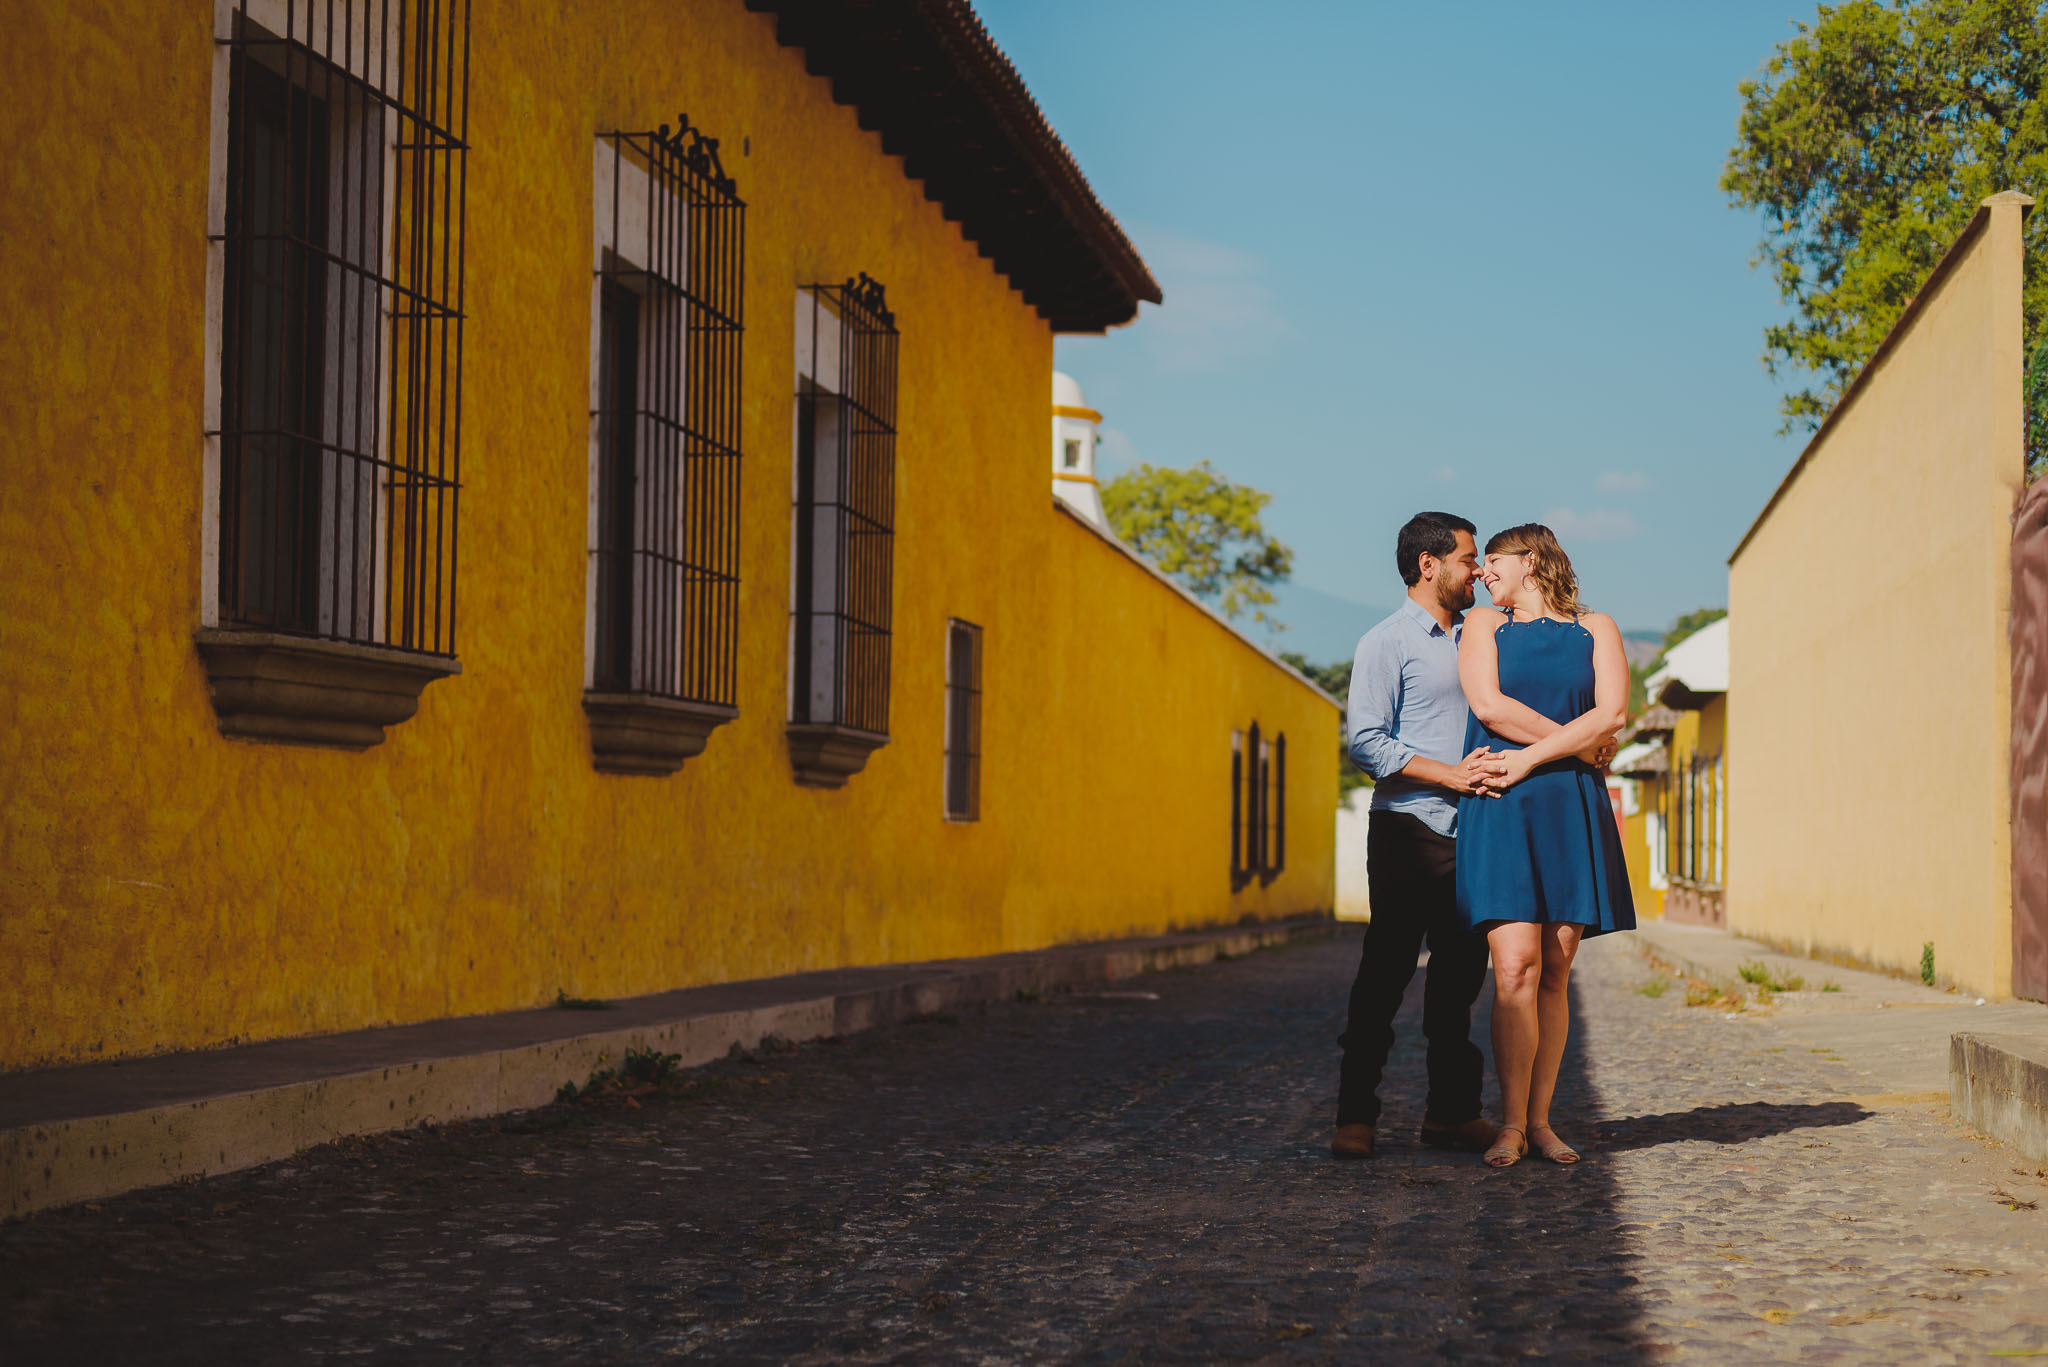 Compromiso-Oscar_Jessica-Pre-boda-engagement-photoshoot-couple-pareja-Bodas_Juan_Salazar-juansalazarphoto-Antigua_Guatemala-Destination_wedding